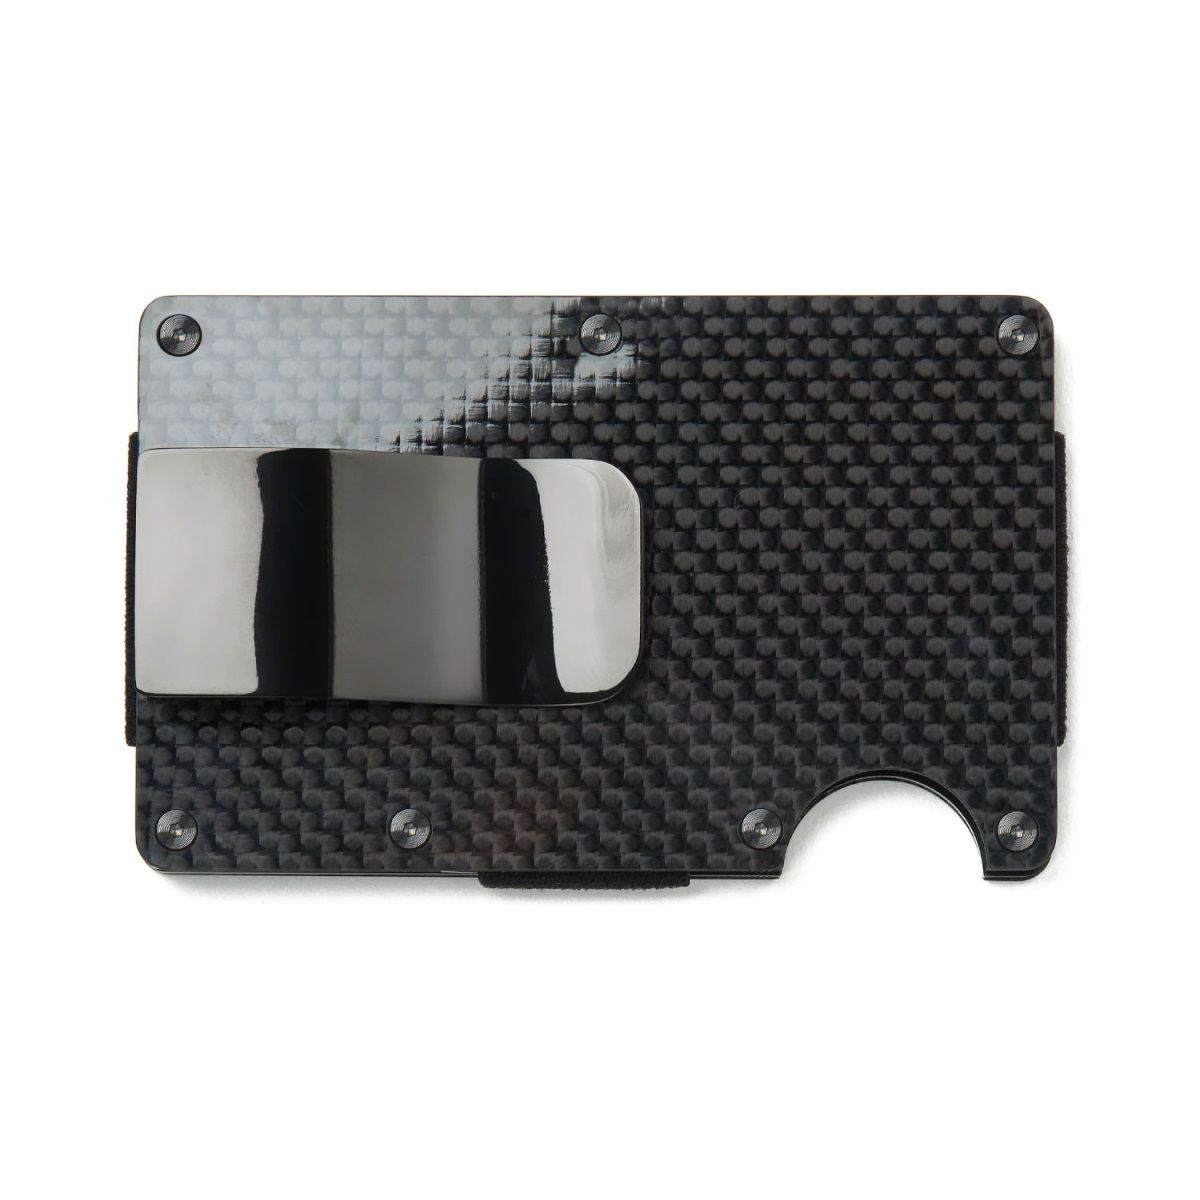 THE RIDGE Carbon Fiber With Money Clip - Carbon